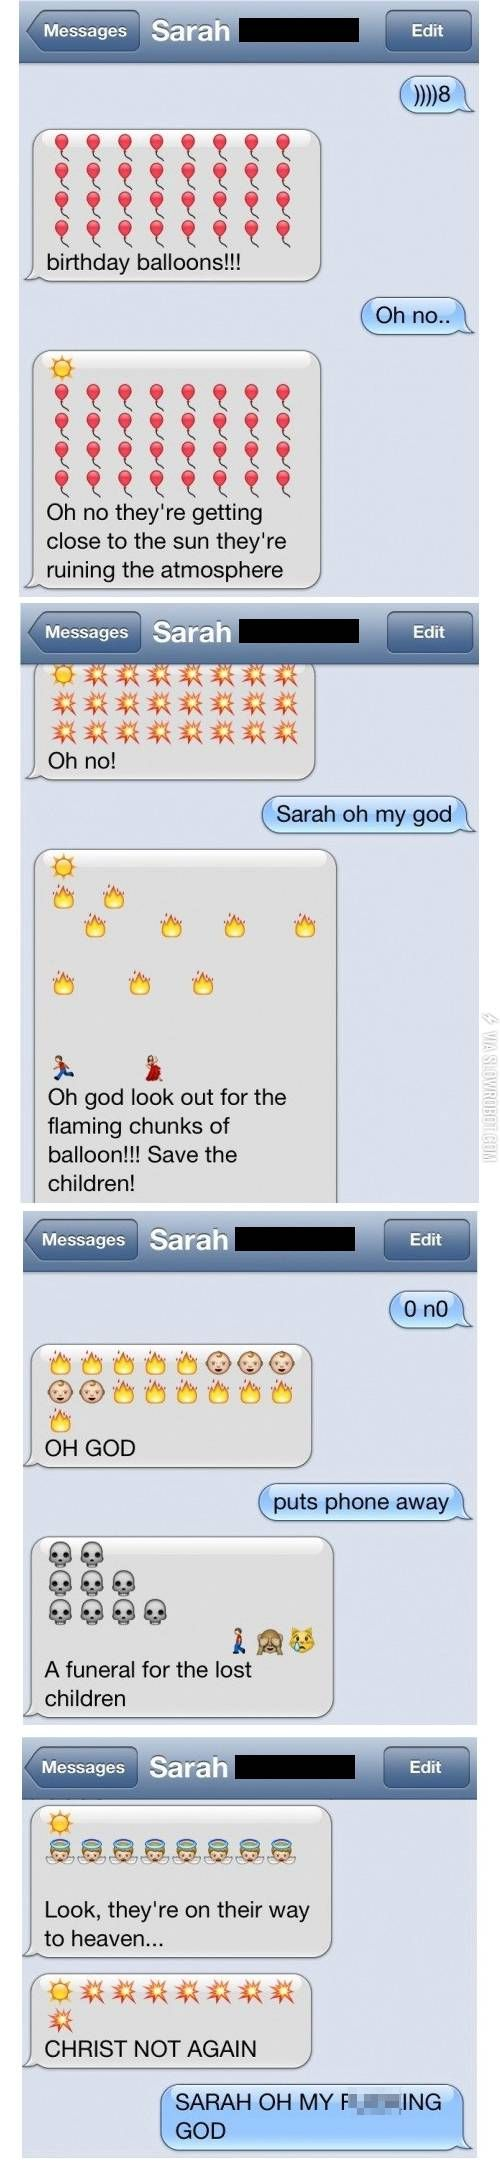 And now, an emoji story.